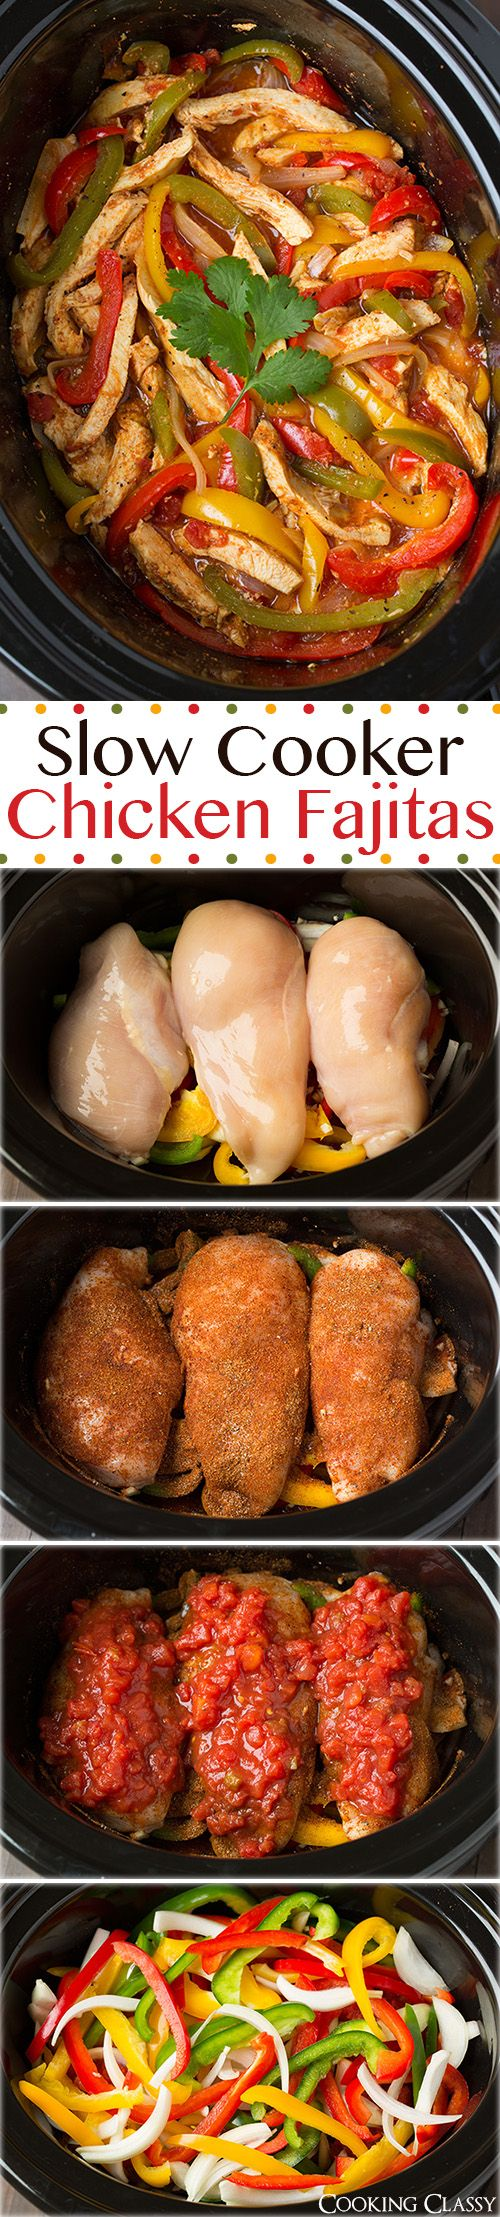 vans sales Slow Cooker Chicken Fajitas   these are easiest chicken fajitas yet they taste AMAZING   My new go to recipe for fajitas